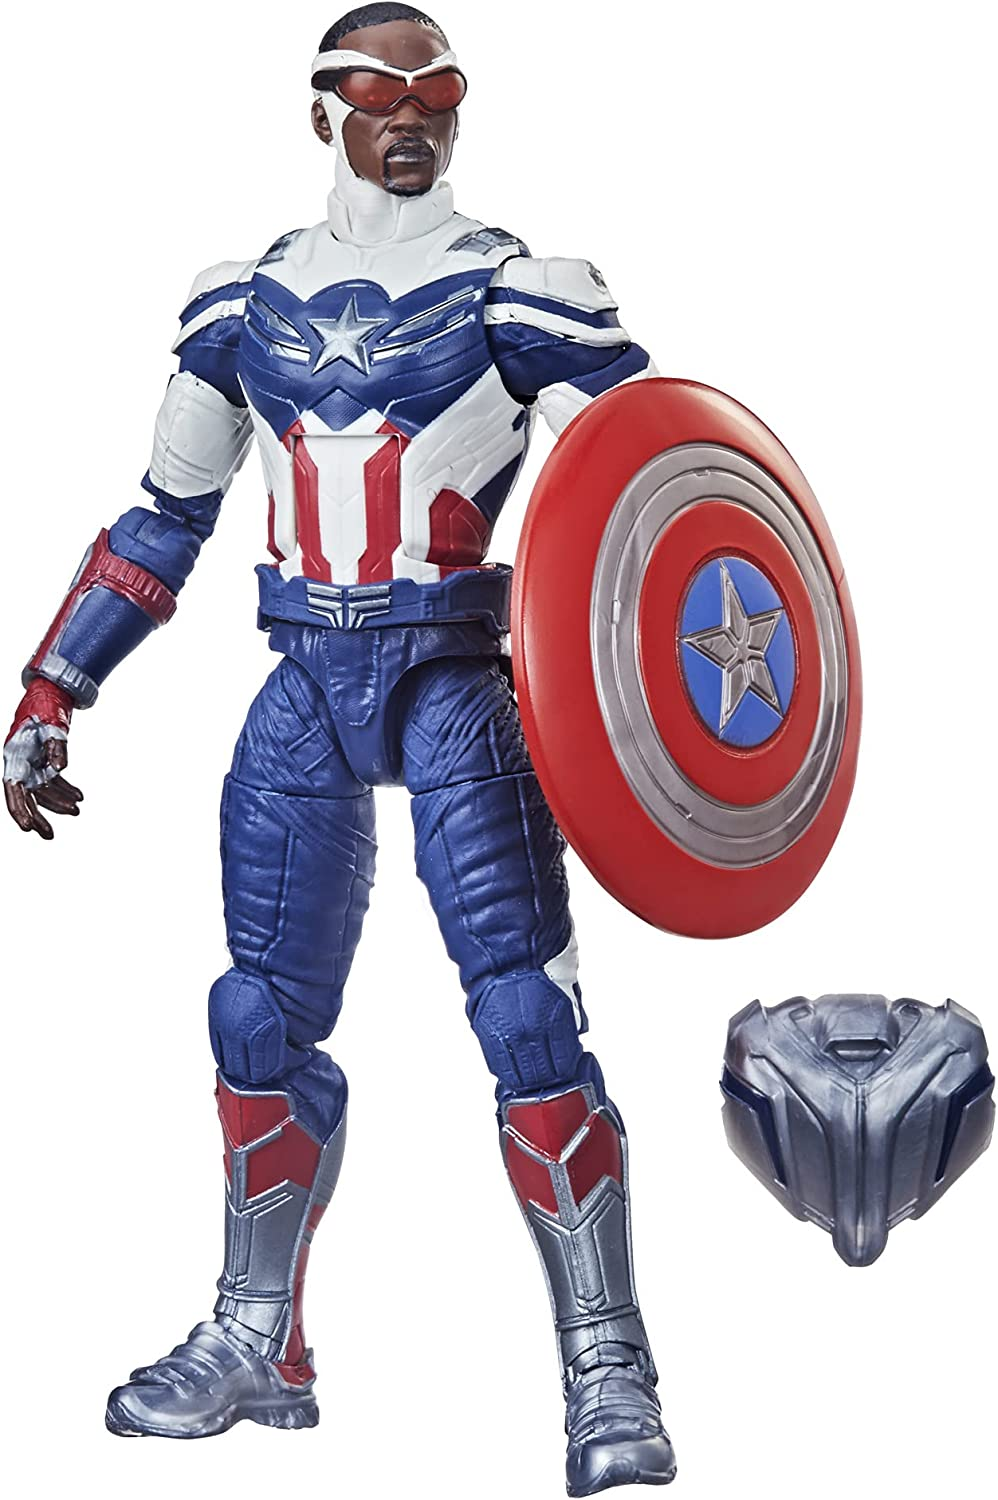 Avengers Hasbro Marvel Legends Series 6-inch Action Figure Toy Captain America: Sam Wilson Premium Design and 2 Accessories, for Kids Age 4 and Up